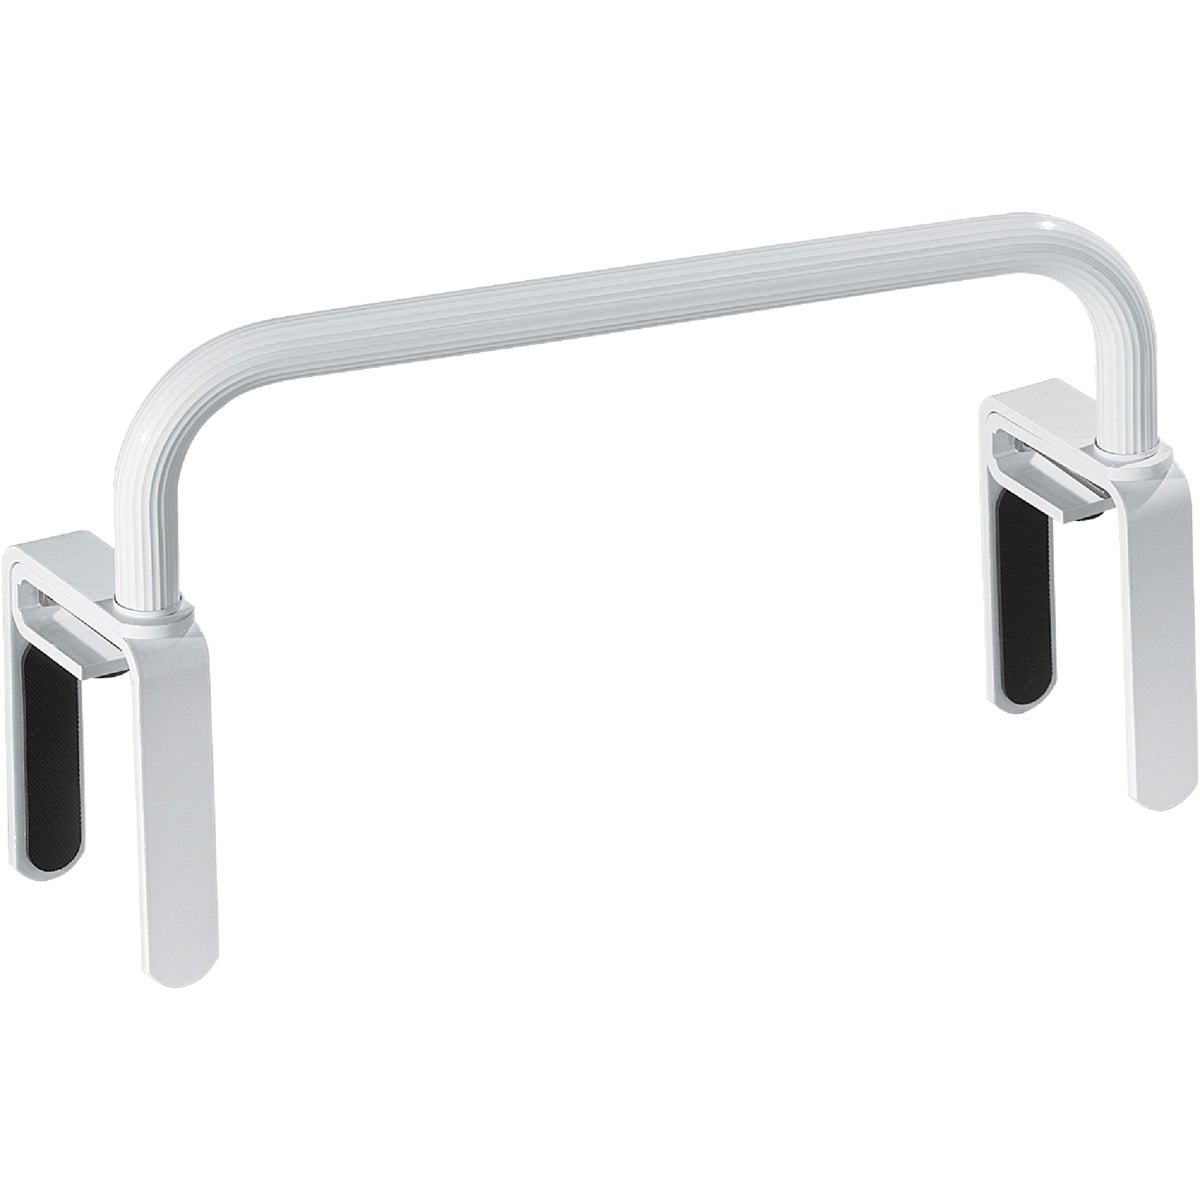 LOW PROFILE GRAB BAR - DN7010 by C S I Donner